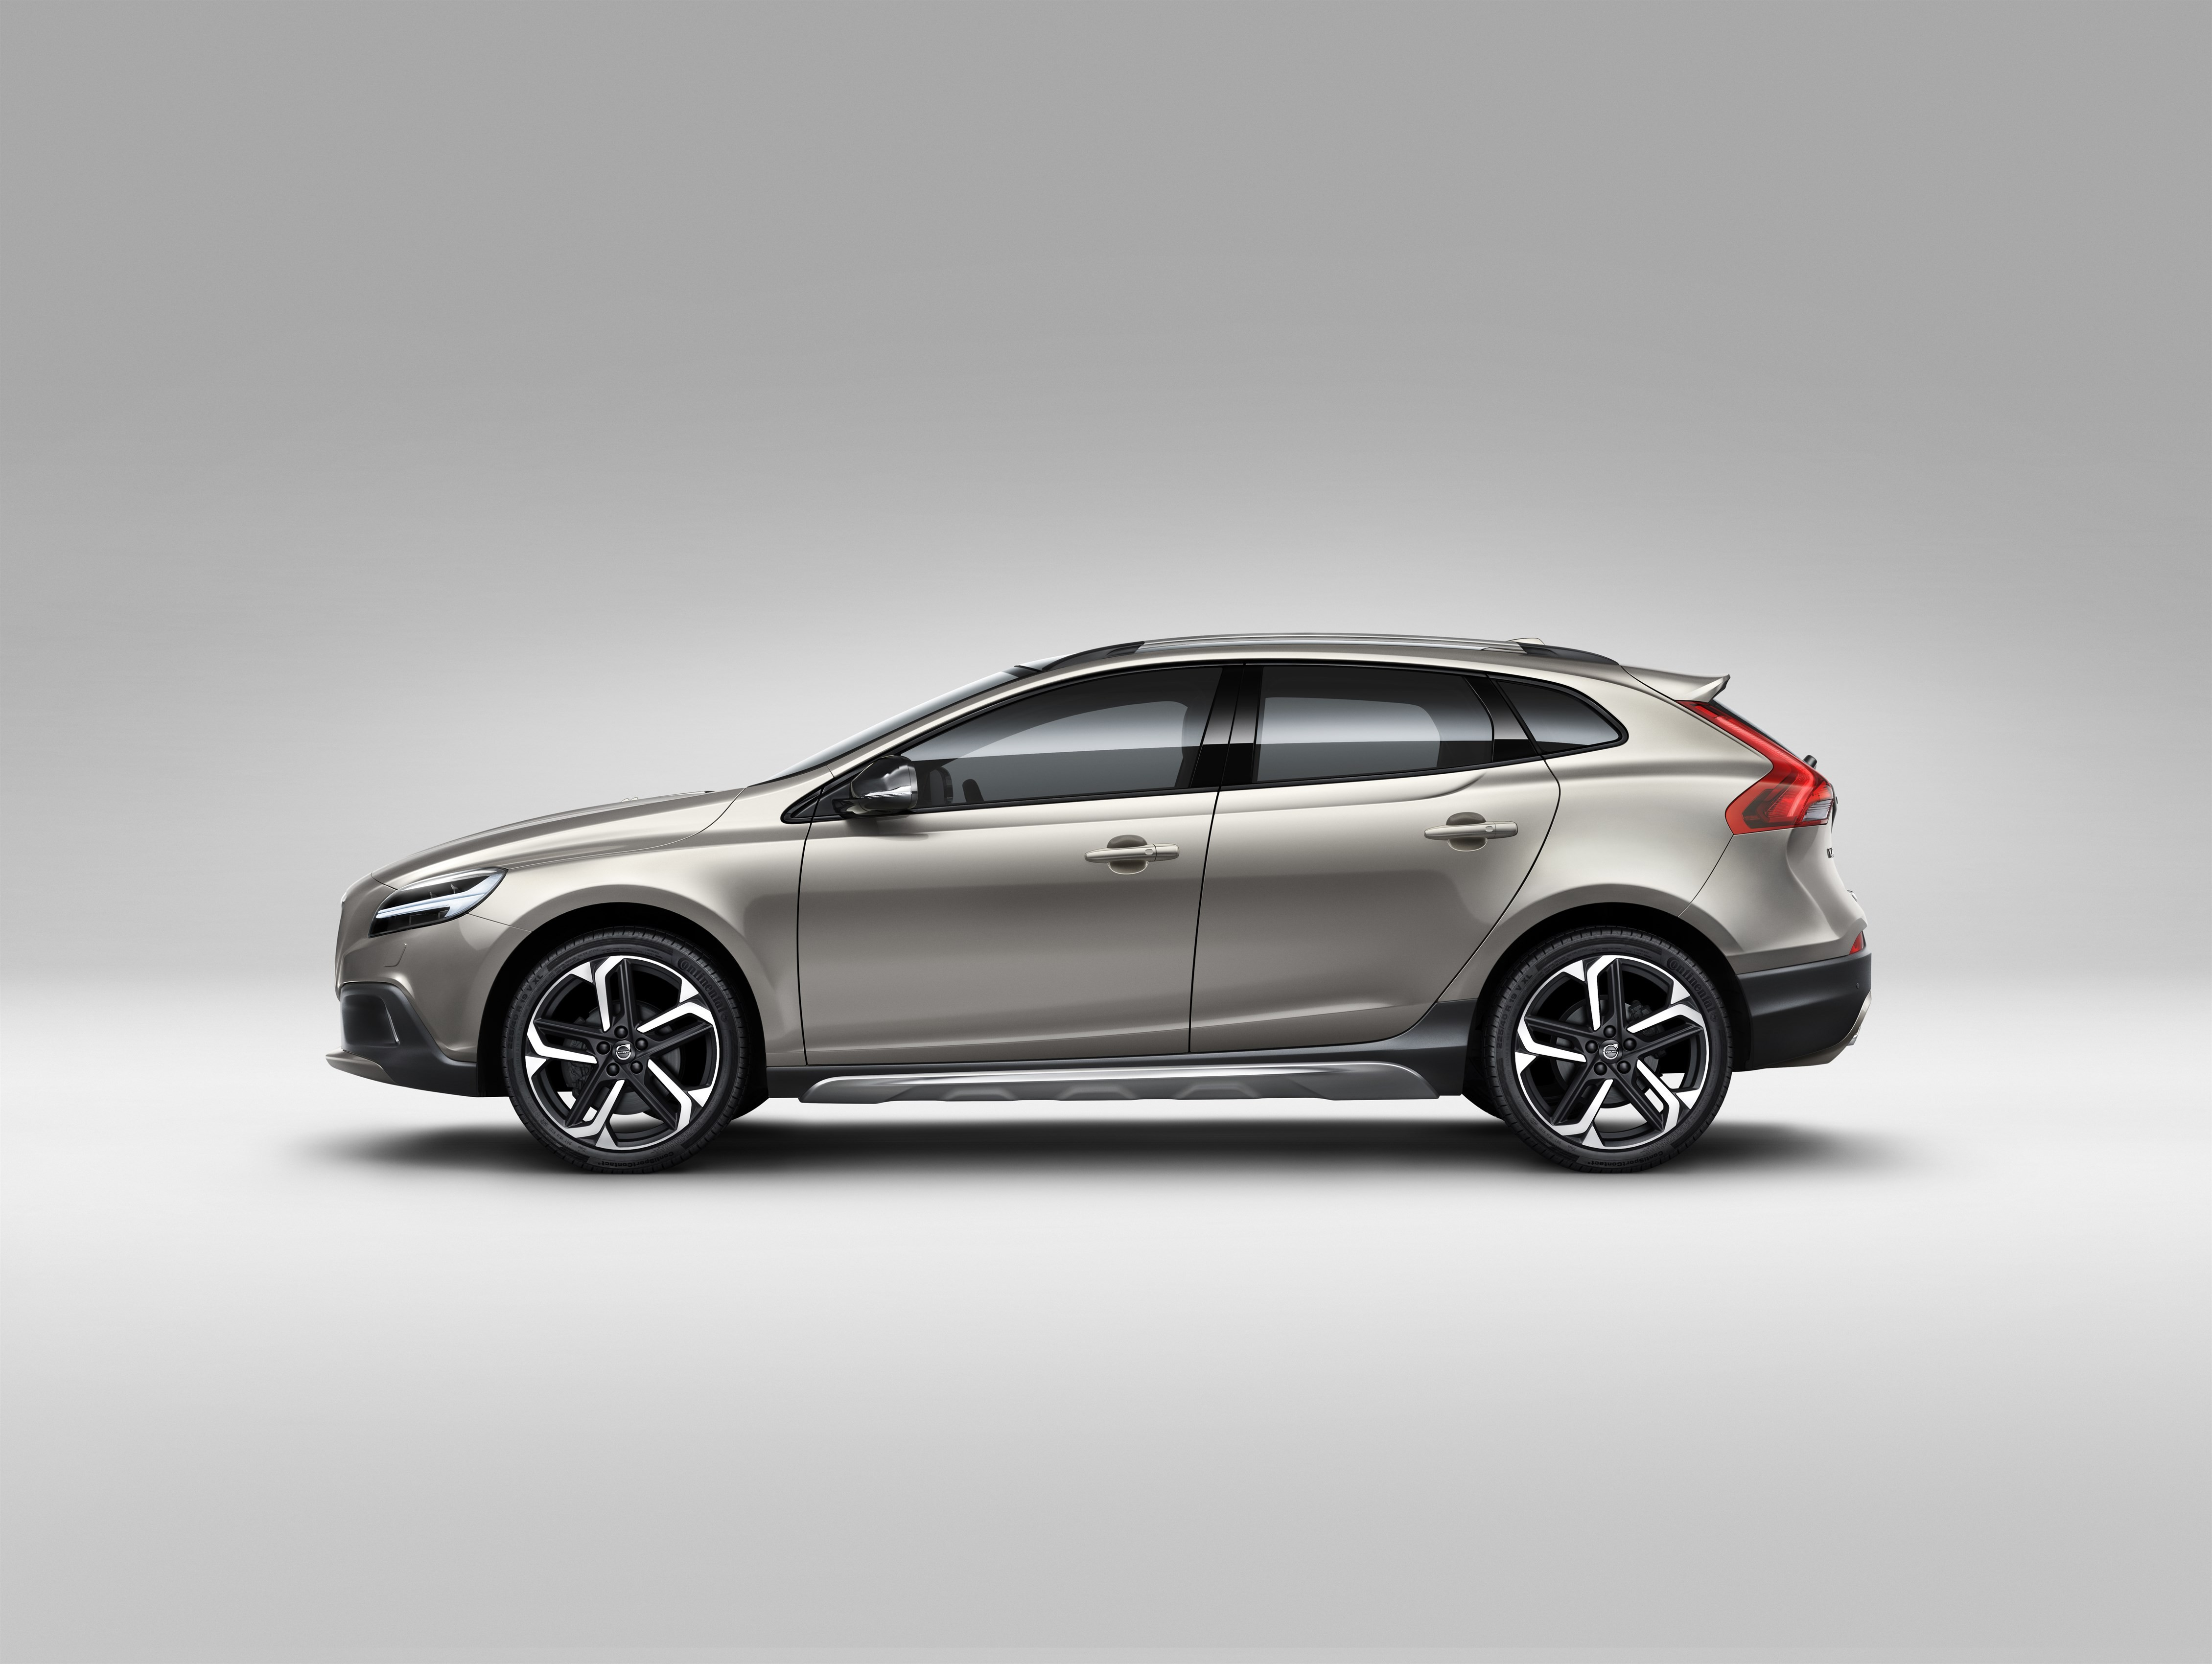 2019 Volvo V40 Says Cheese In New Renderings - autoevolution